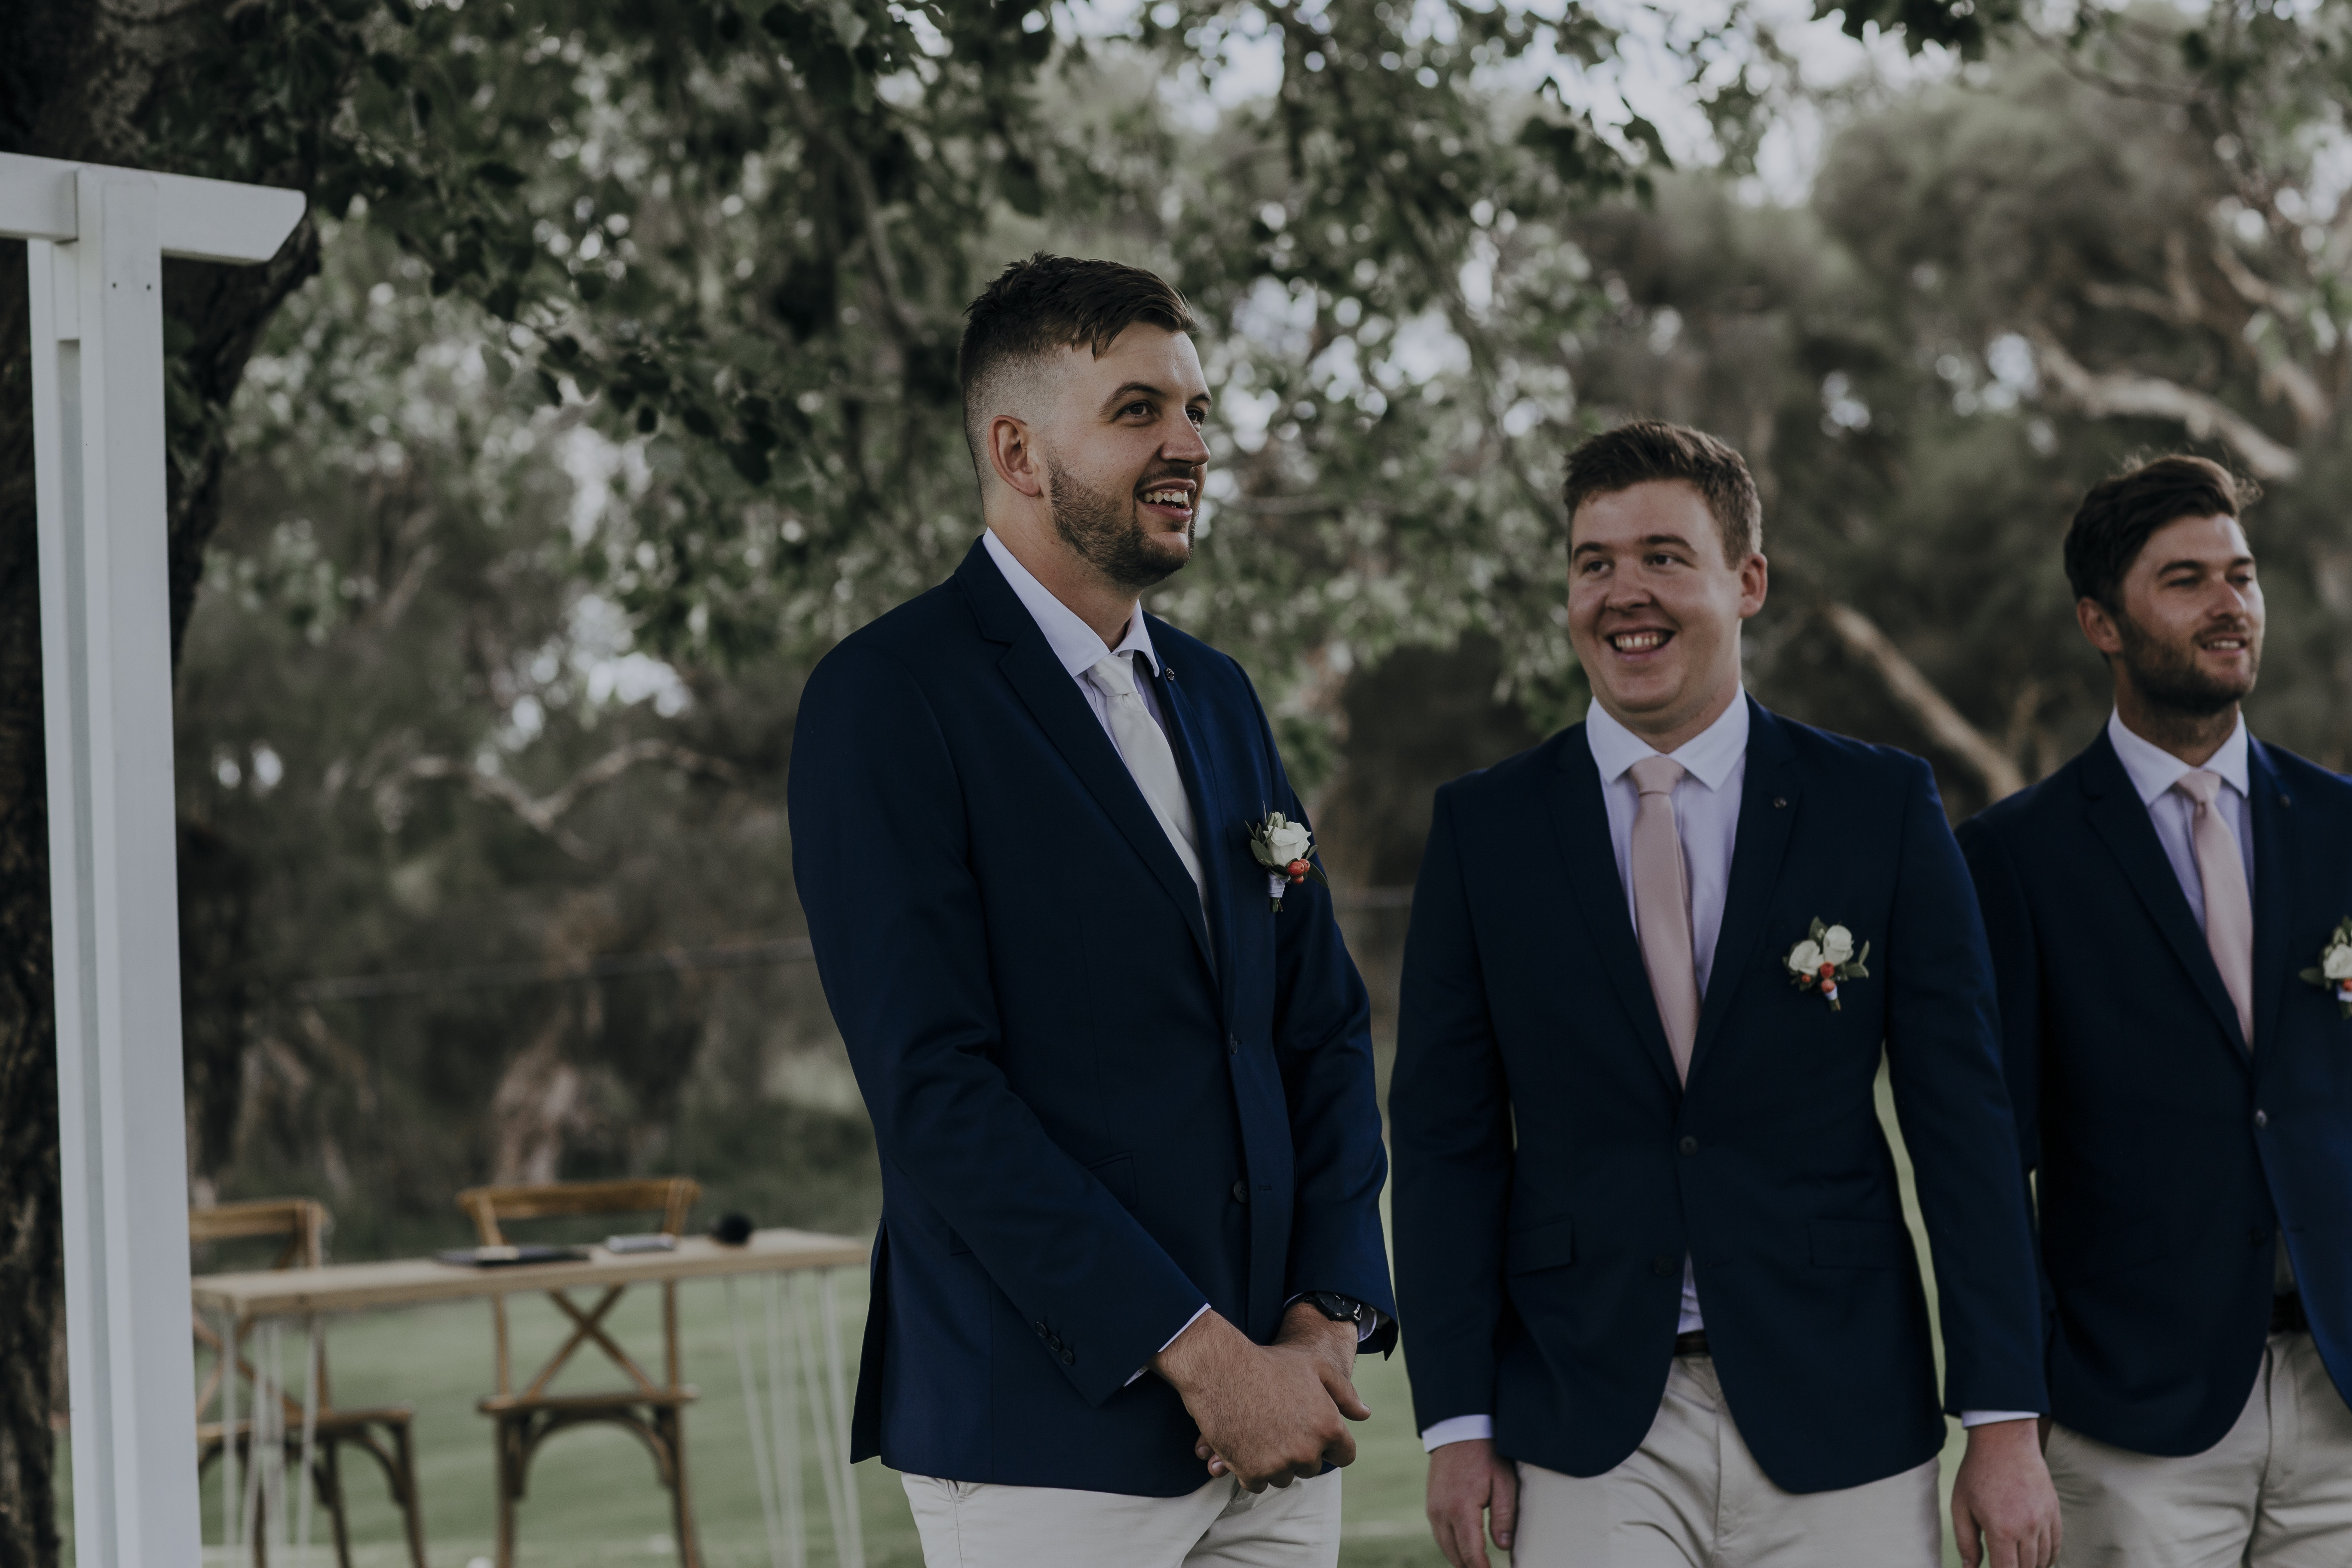 old Broadwater farm wedding elopement